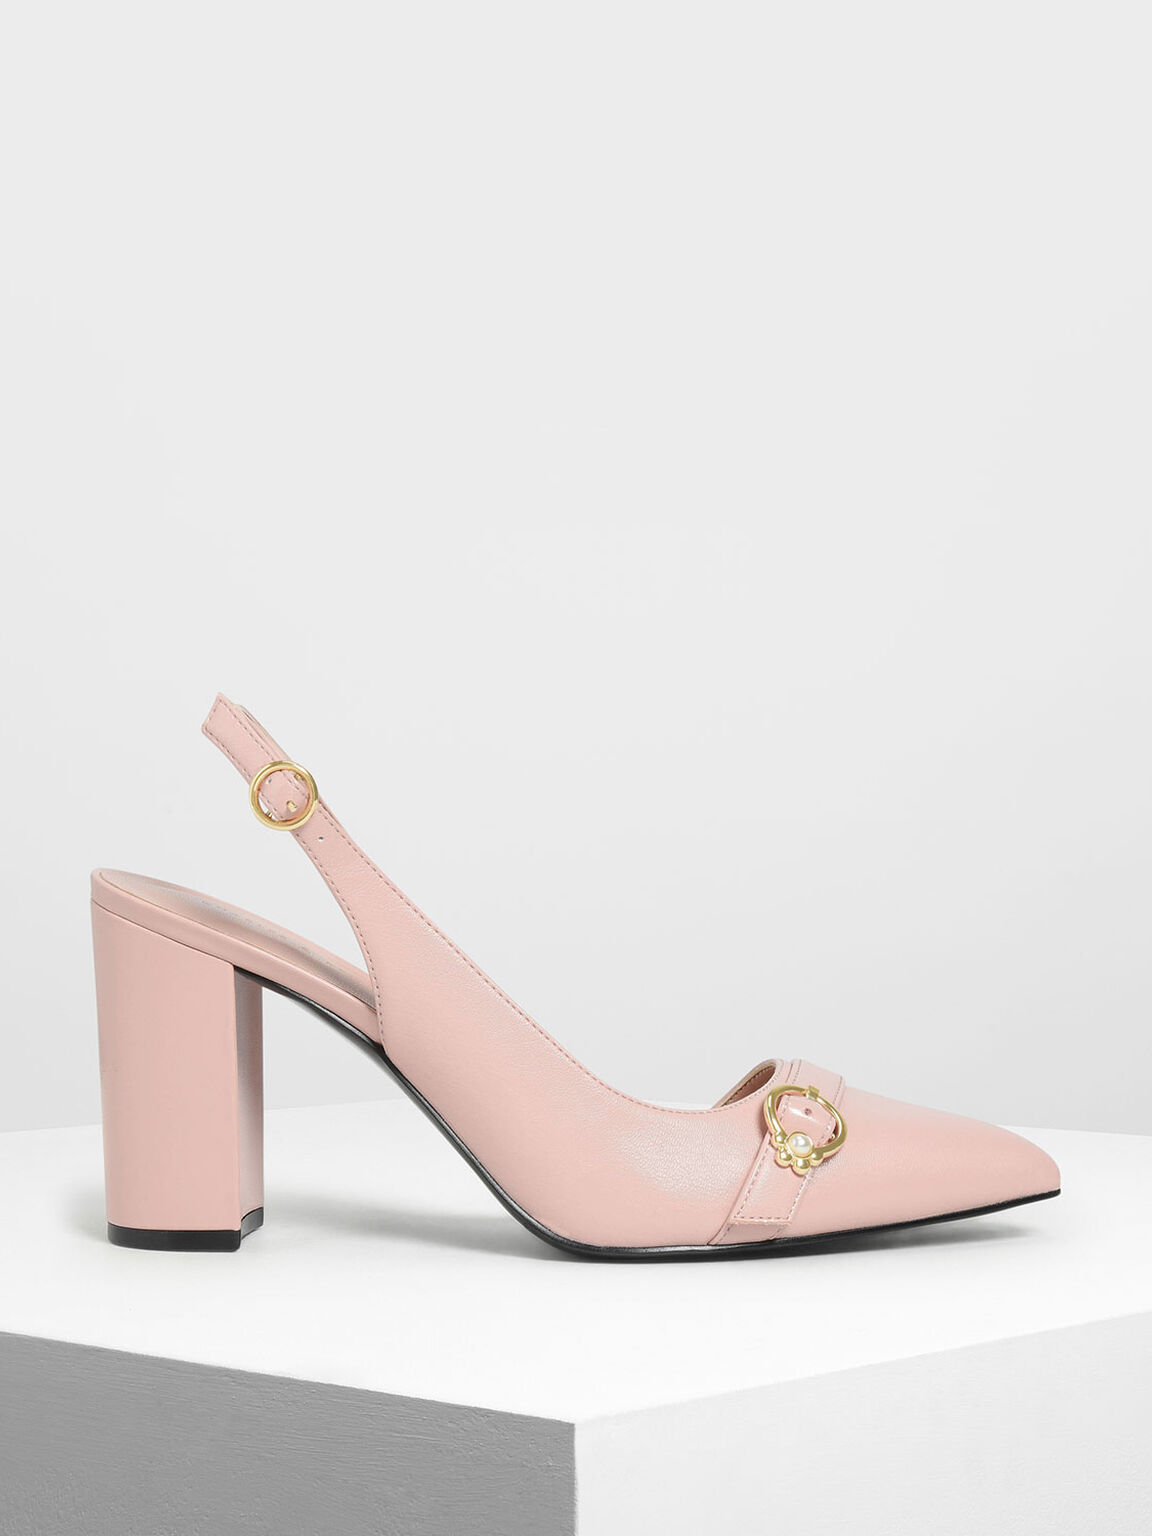 Embellished Asymmetrical Heels, Peach, hi-res